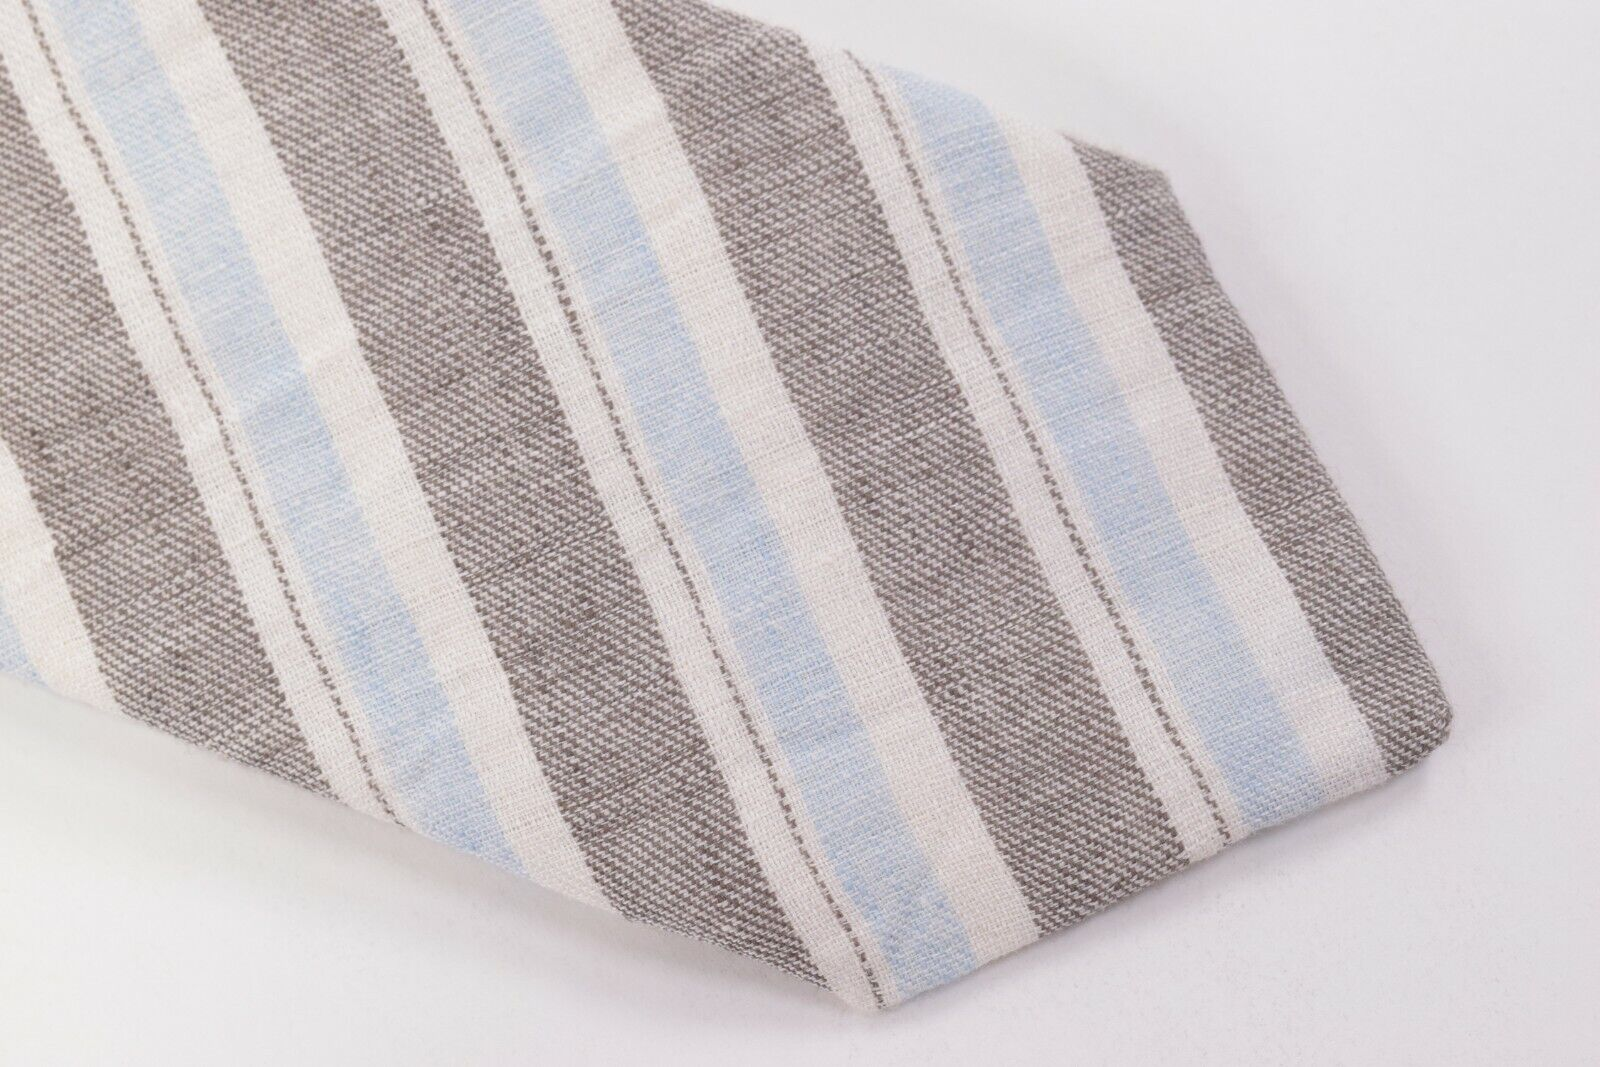 Belvest Neck Tie NWT White, Grey and Light Blue Striped 100% Linen